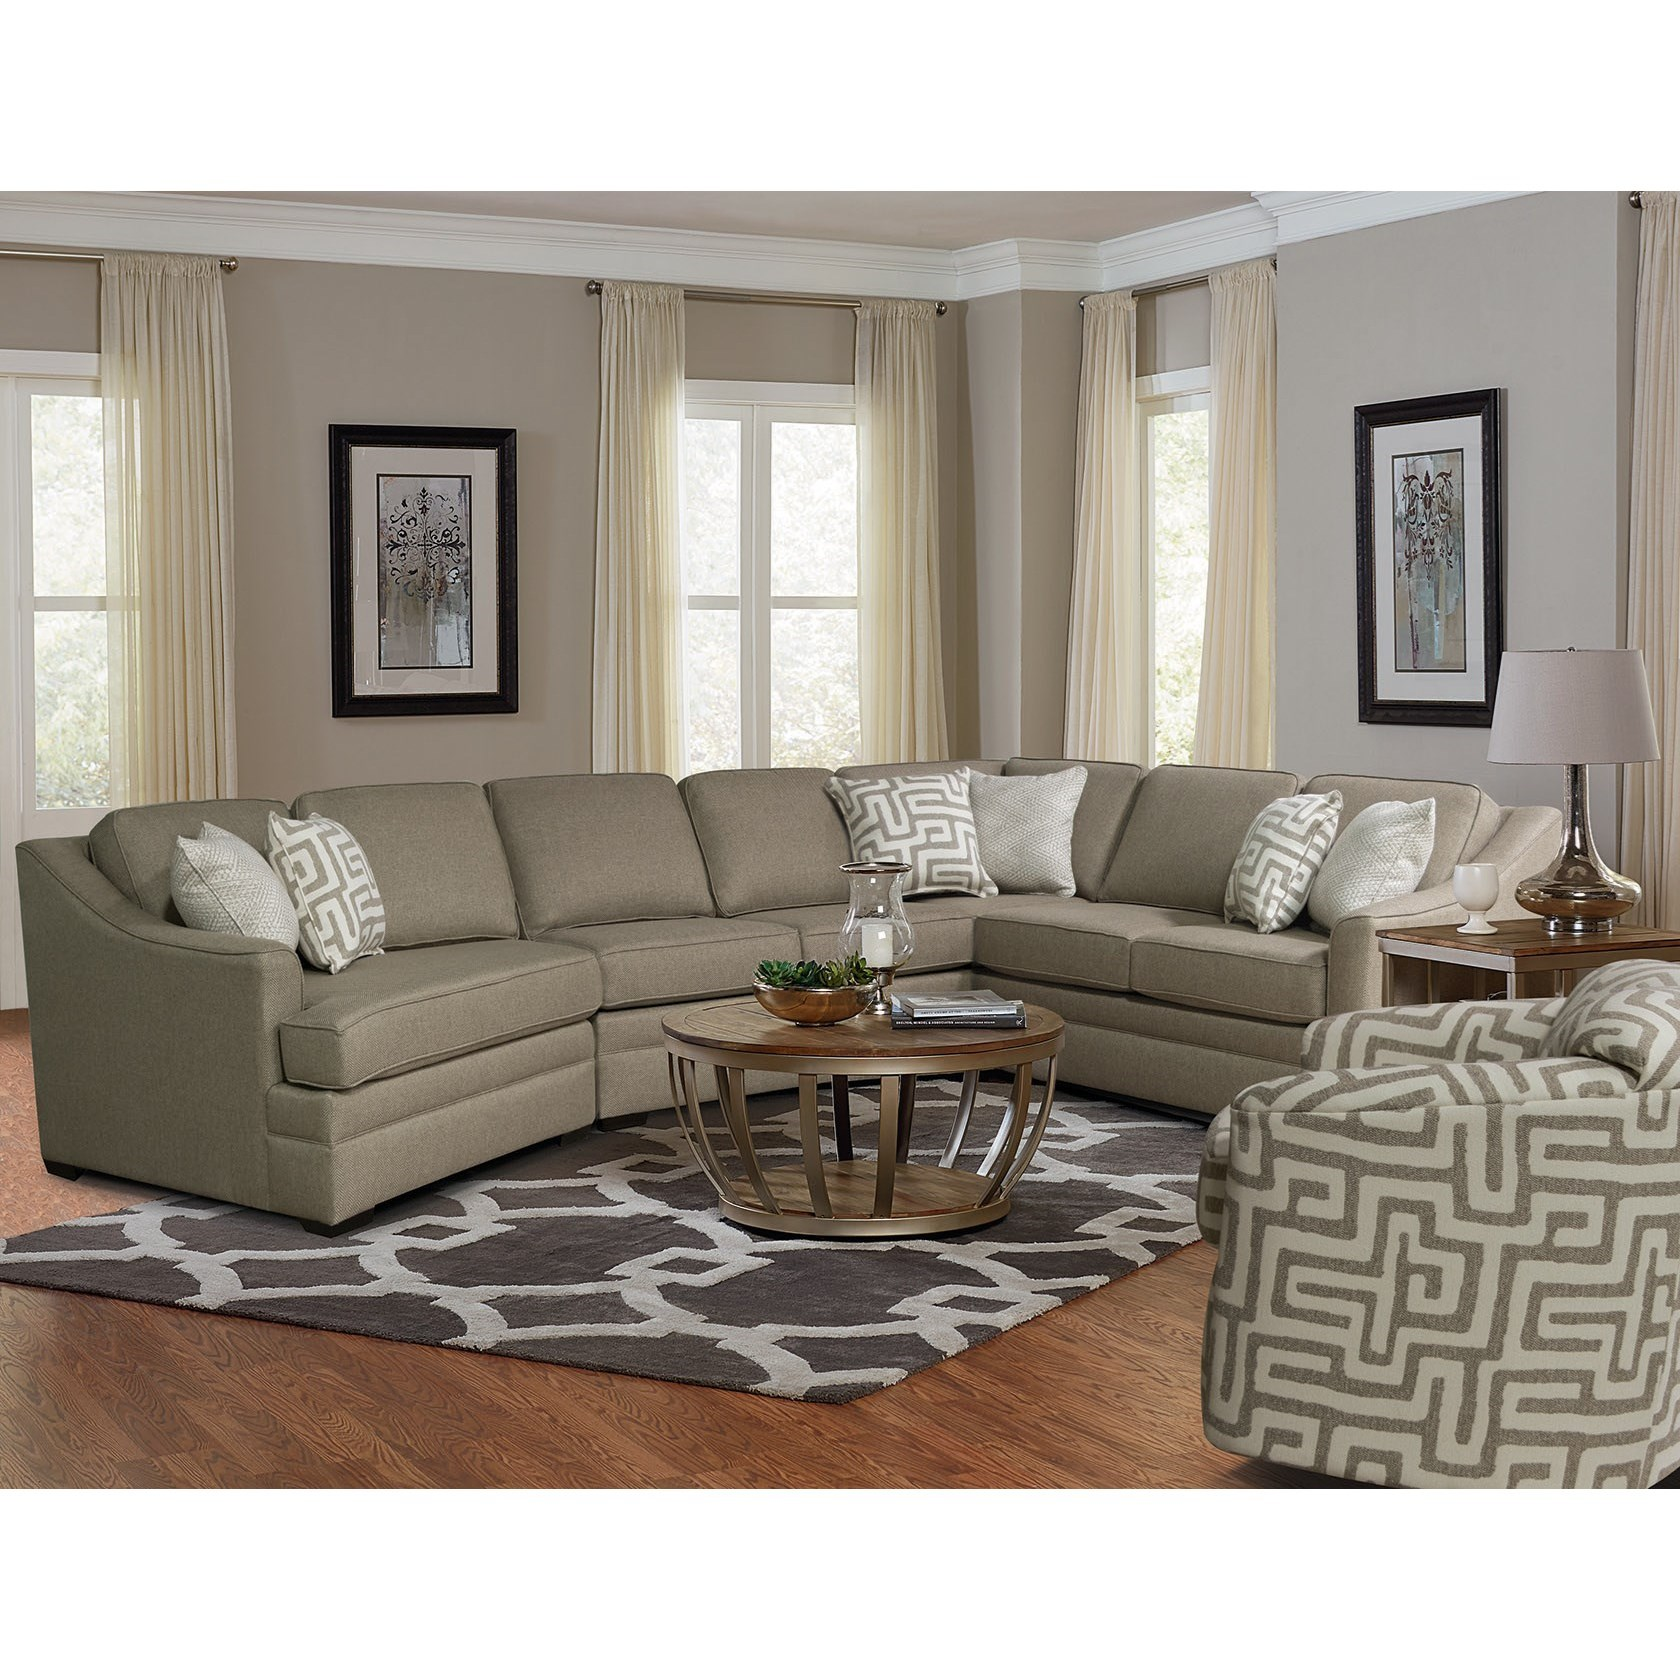 Romero Living Room Sectional Jerome 039 S Furniture: England Thomas Sectional Sofa With Cuddler